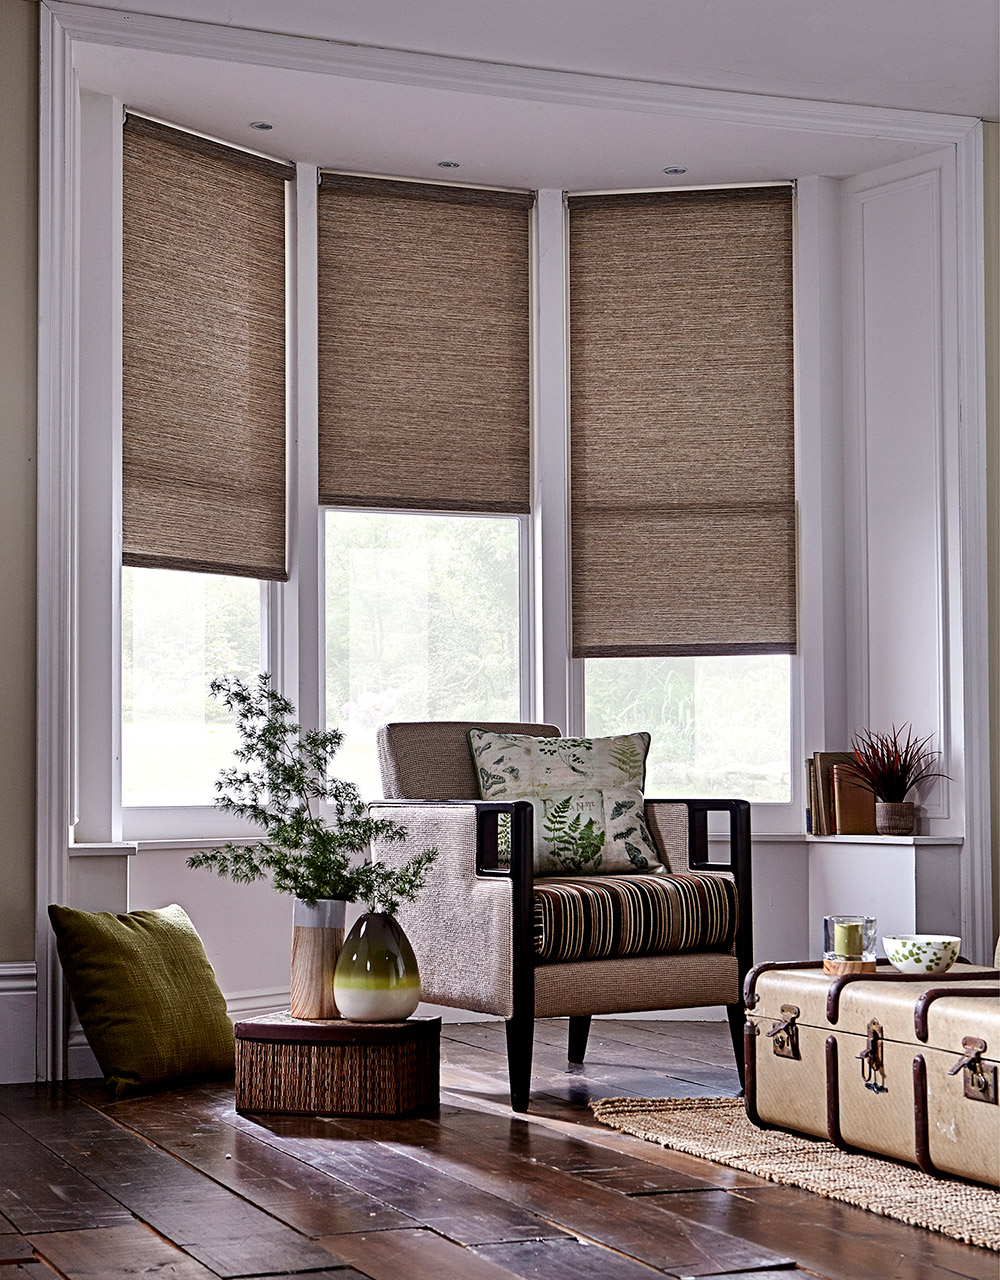 Tree House Bark Roller Living edit Blinds. Roller Blinds   Apollo Blinds   Venetian  Vertical  Roman  Roller